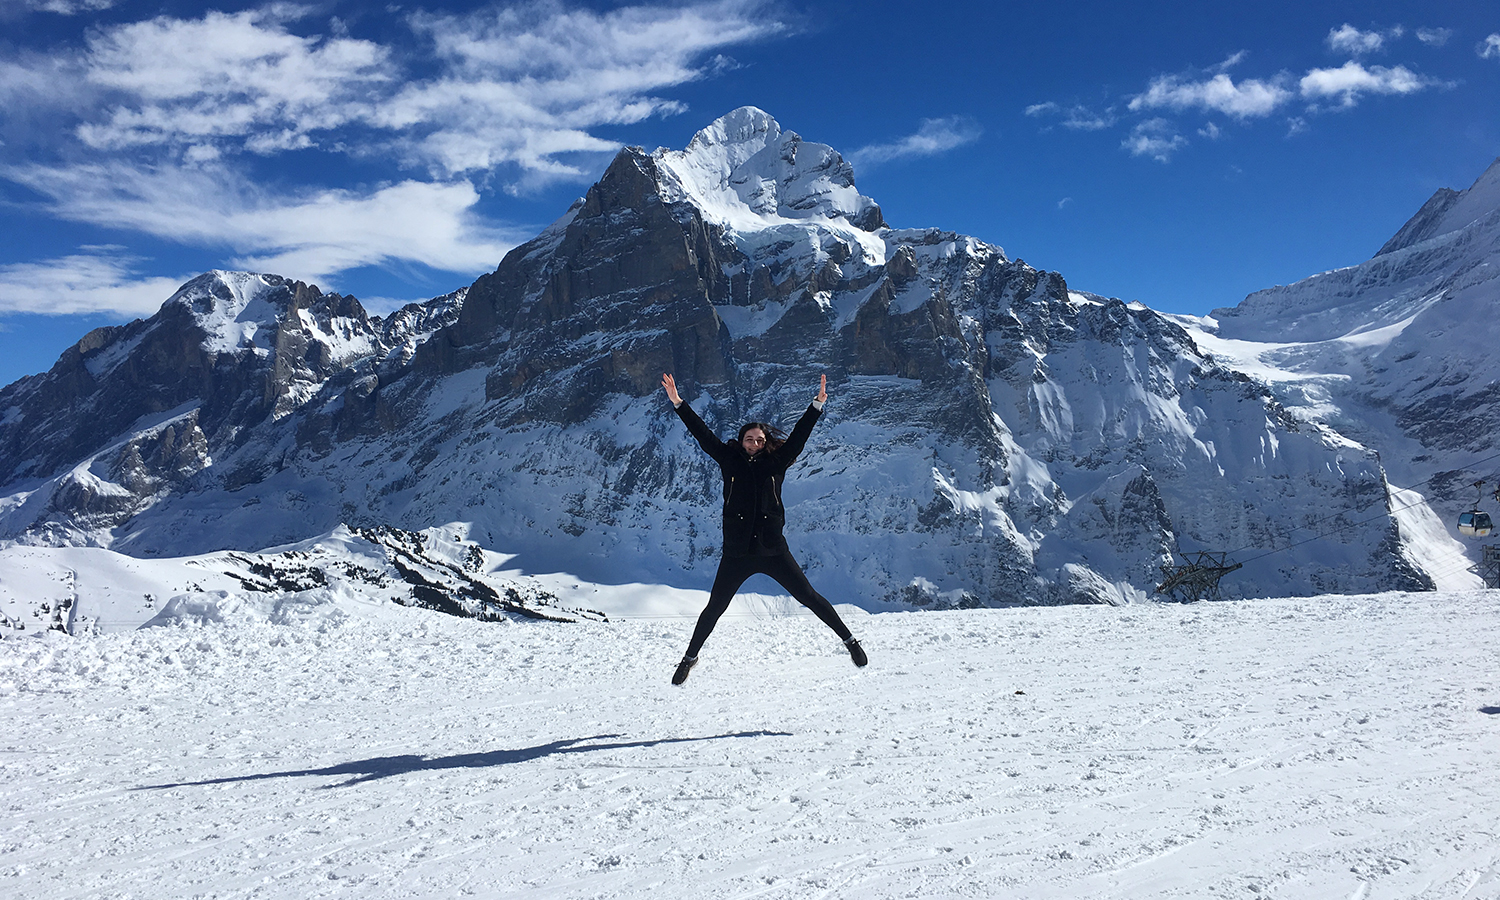 Sarah Burstein '19 leaps in the air while hiking along the Alps Mountain Range in Switzerland. Burstein is studying abroad in Copenhagen, Denmark through a partnership with DIS and the Center for Global Education.